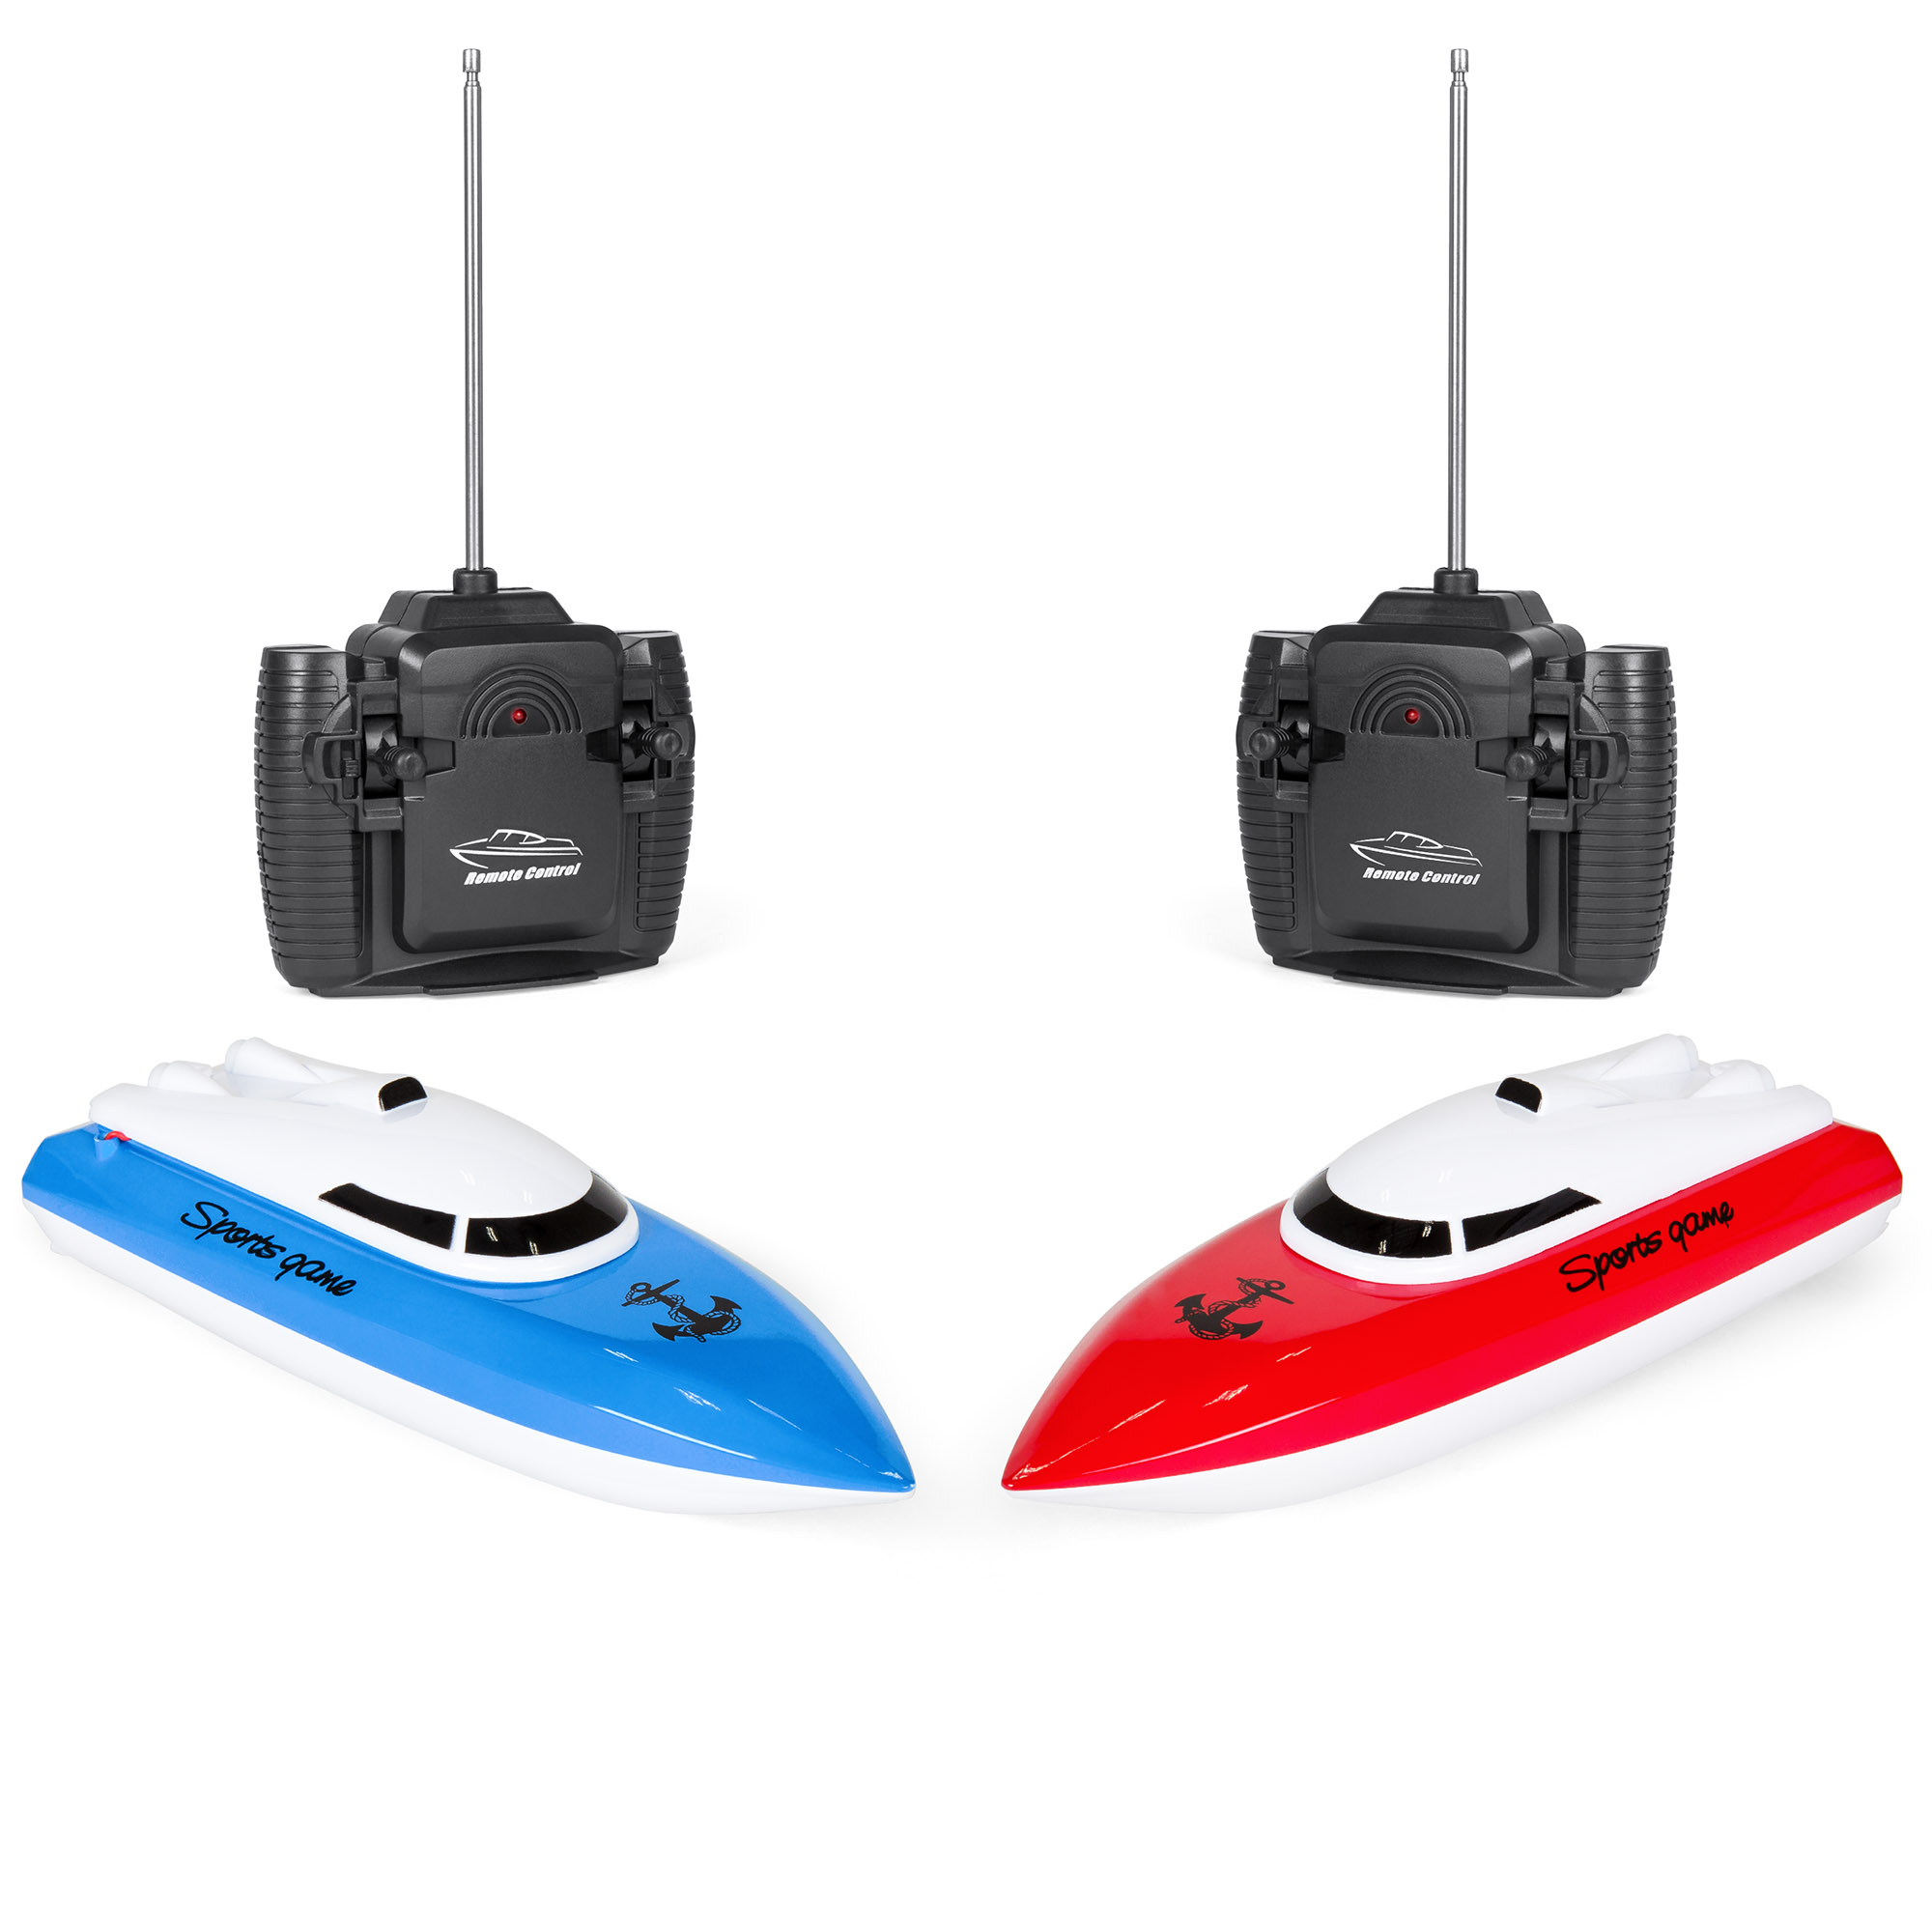 Best Choice Products Set of 2 Kids 24MHz RC Racing Boats Toys w/ Remote Controls, Rechargeable 3.6V Batteries - Blue/Red